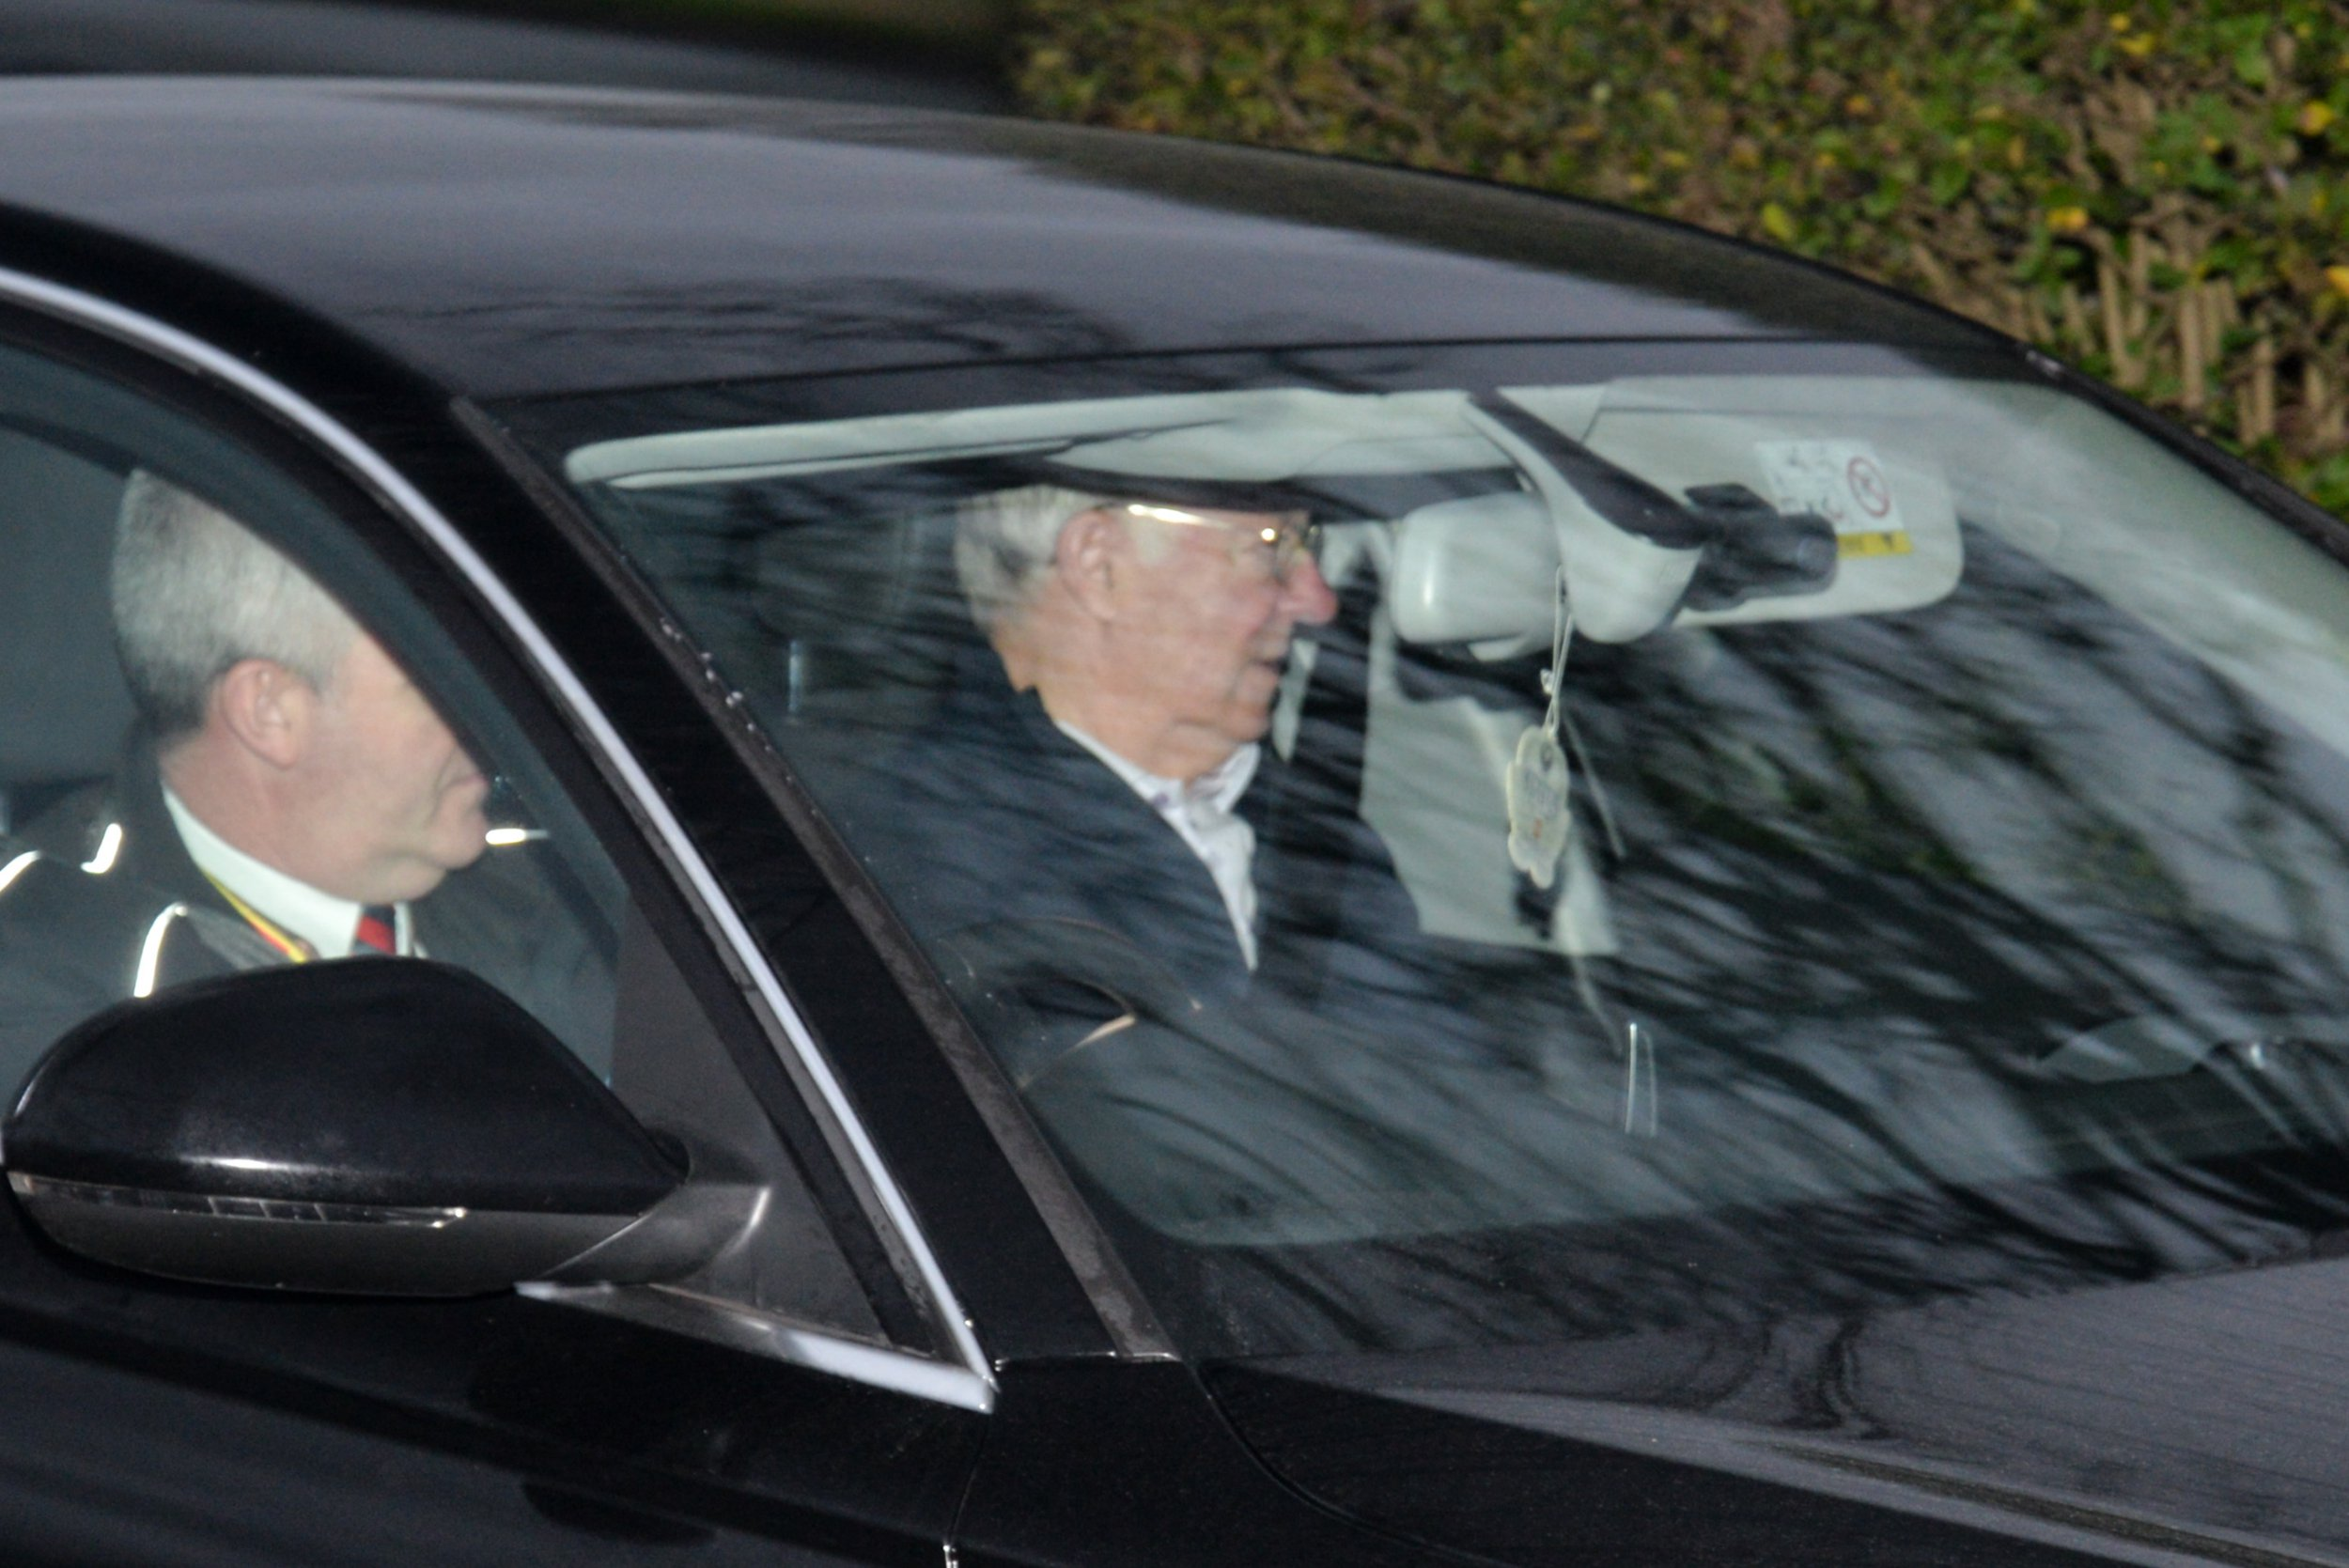 Sir Alex Ferguson joins Manchester United players at training before Tottenham clash